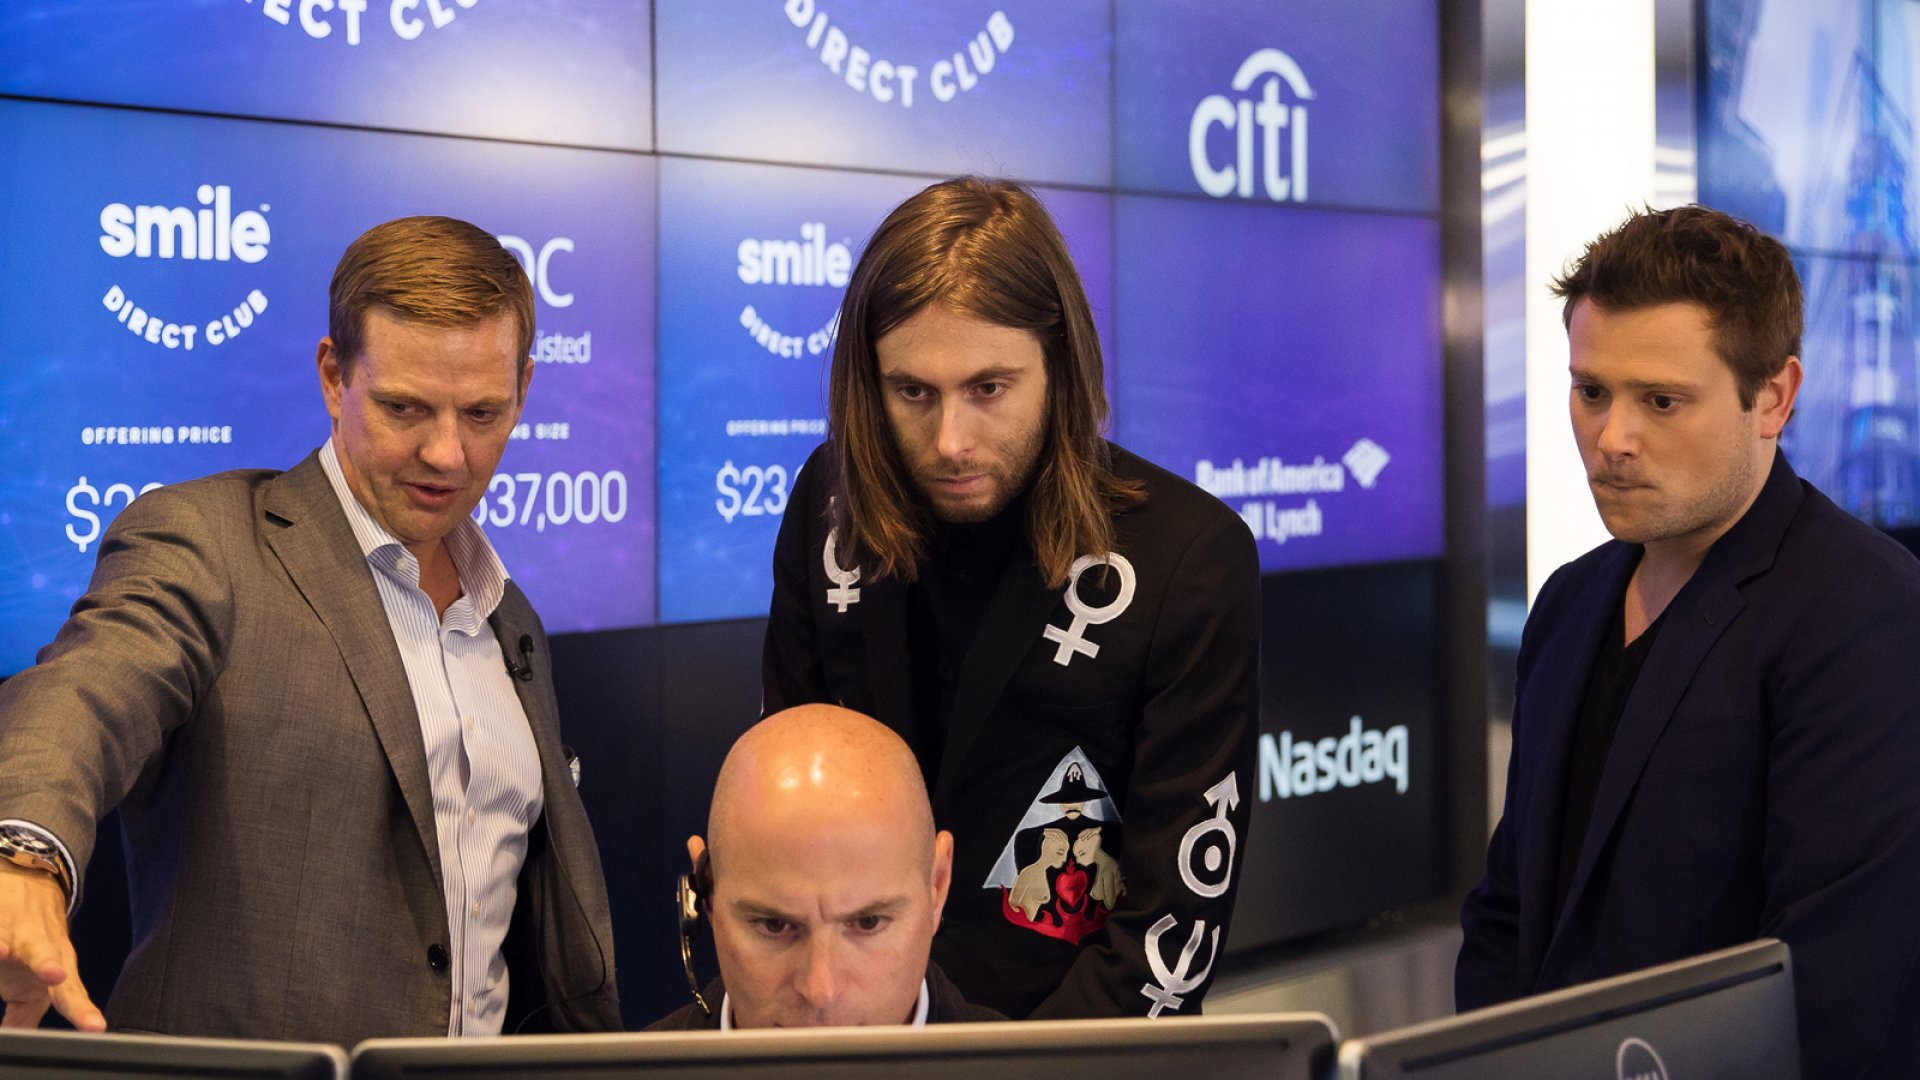 $6.4 Billion Teeth Straightening Startup Smile Direct Club Tumbled in Its Stock Trading Debut